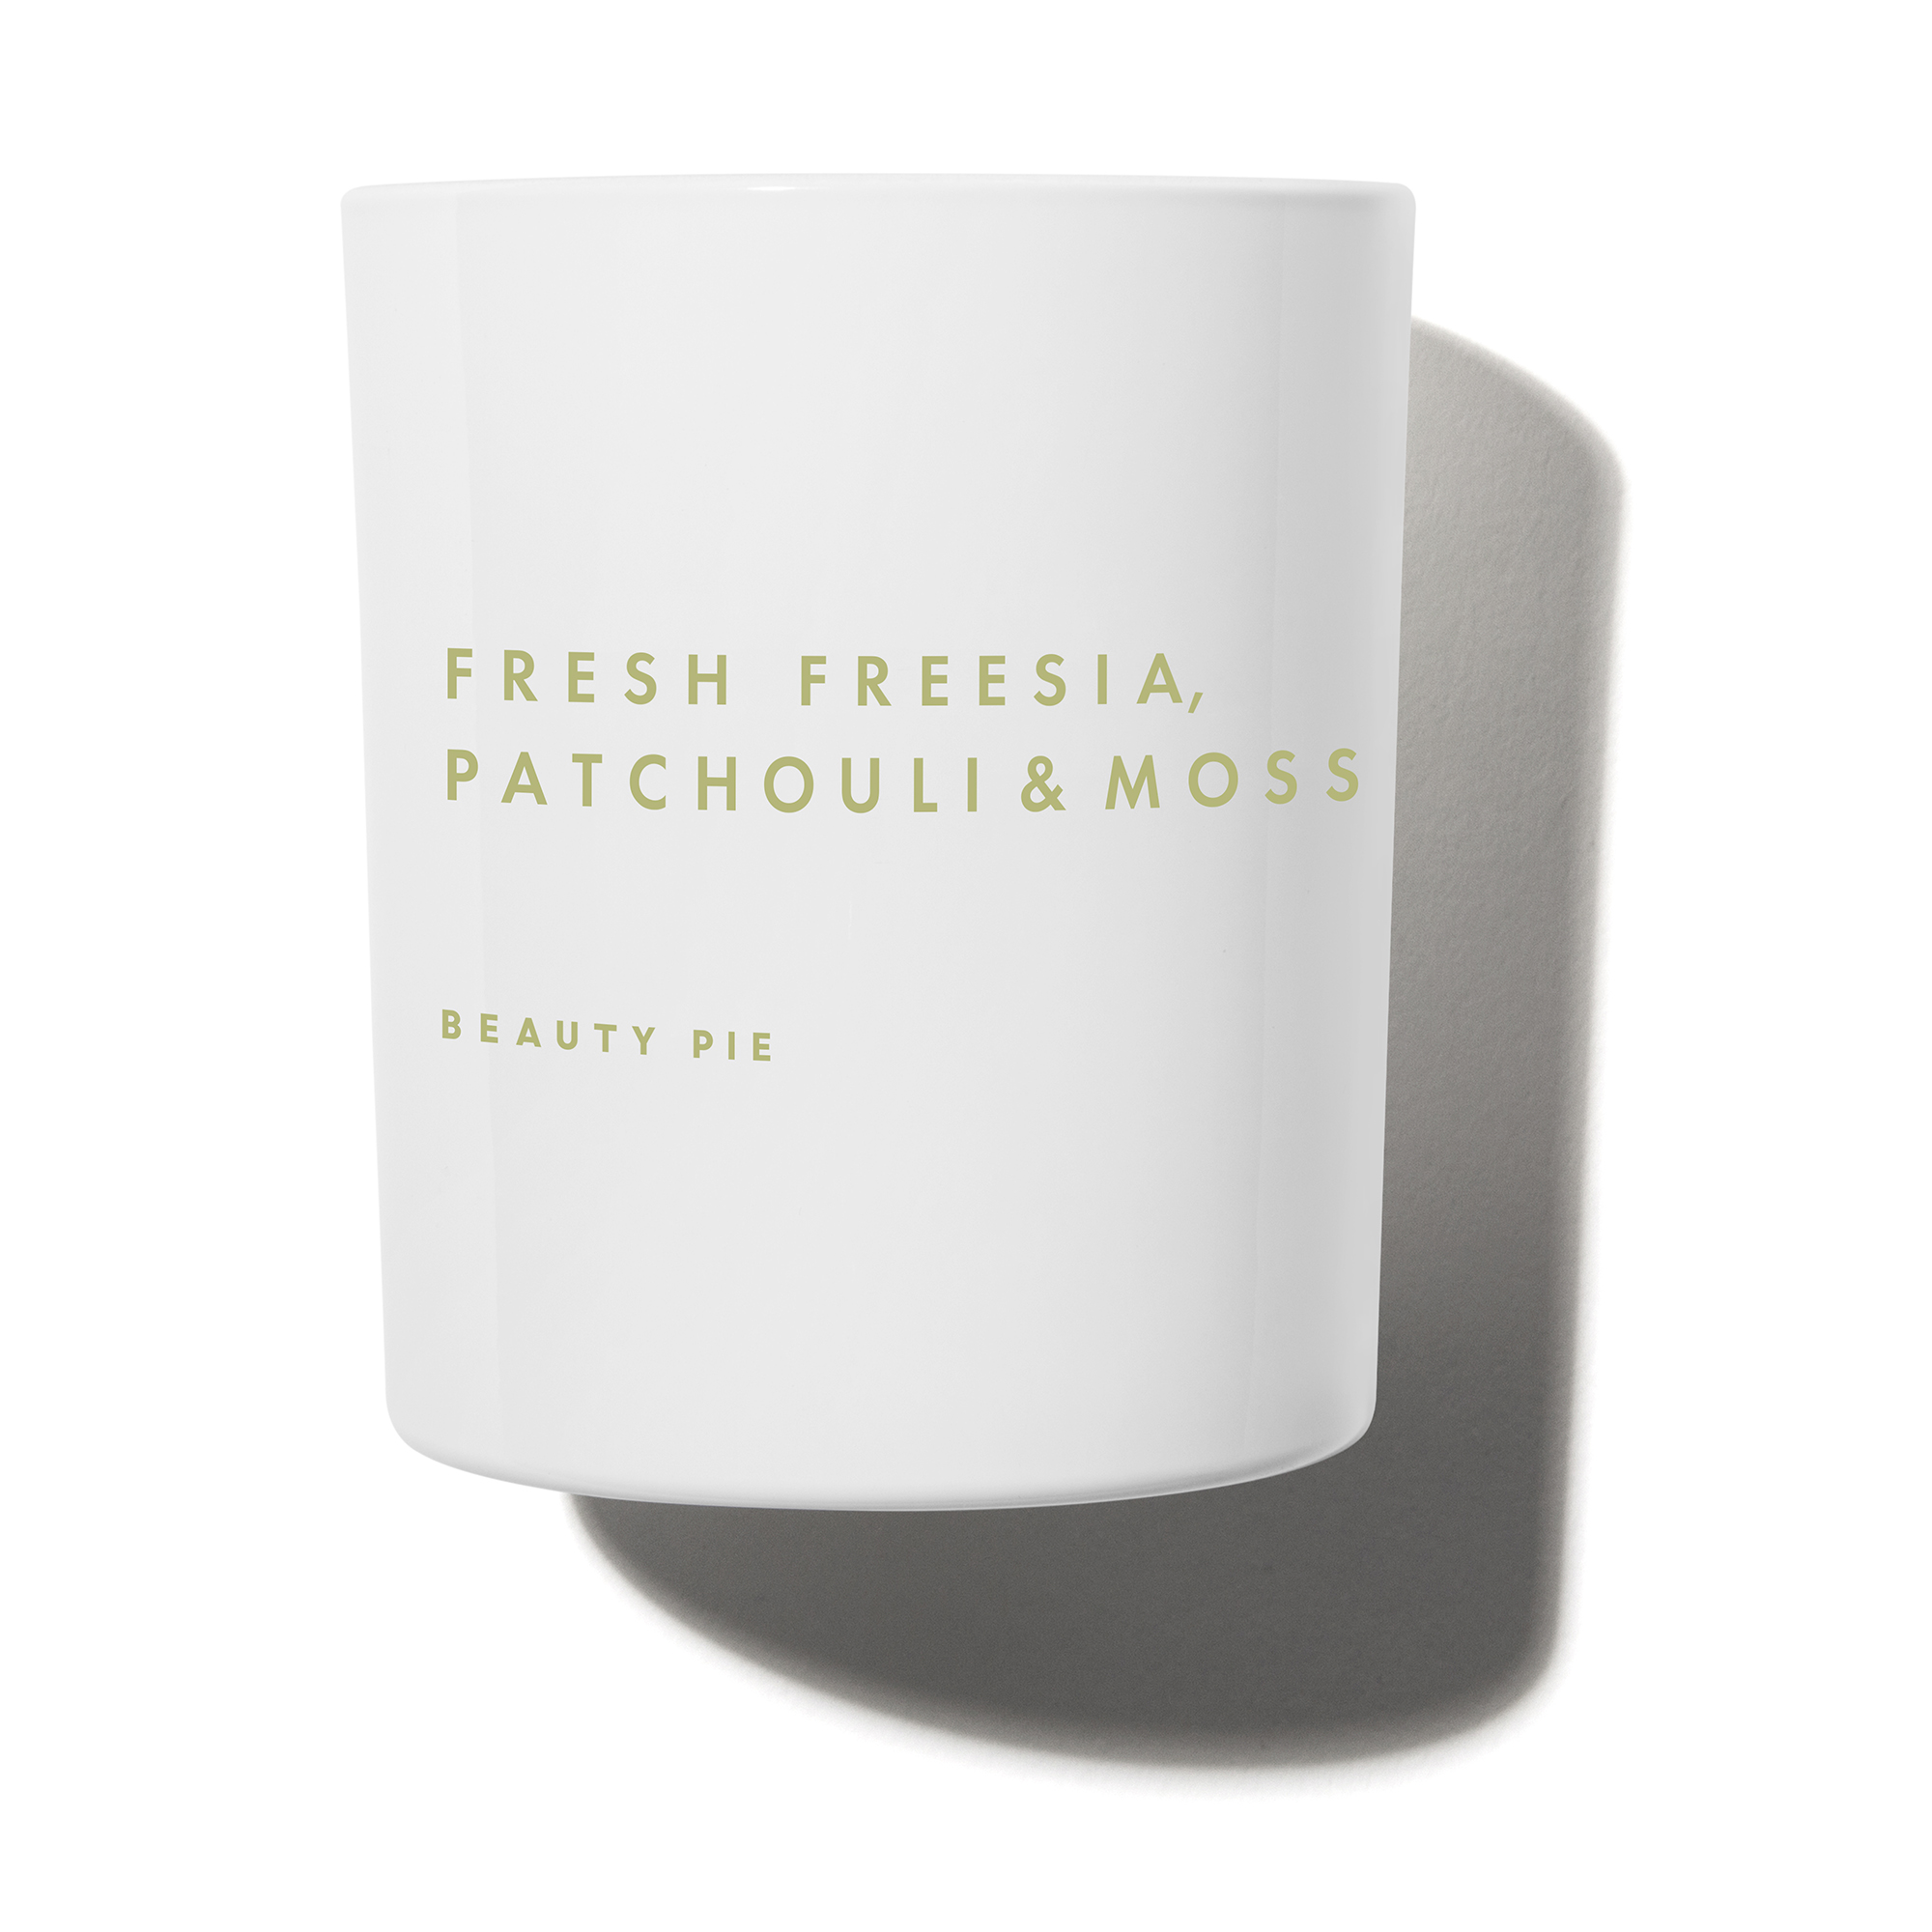 Fresh Freesia Patchouli & Moss Luxury Scented Candle by Beauty Pie